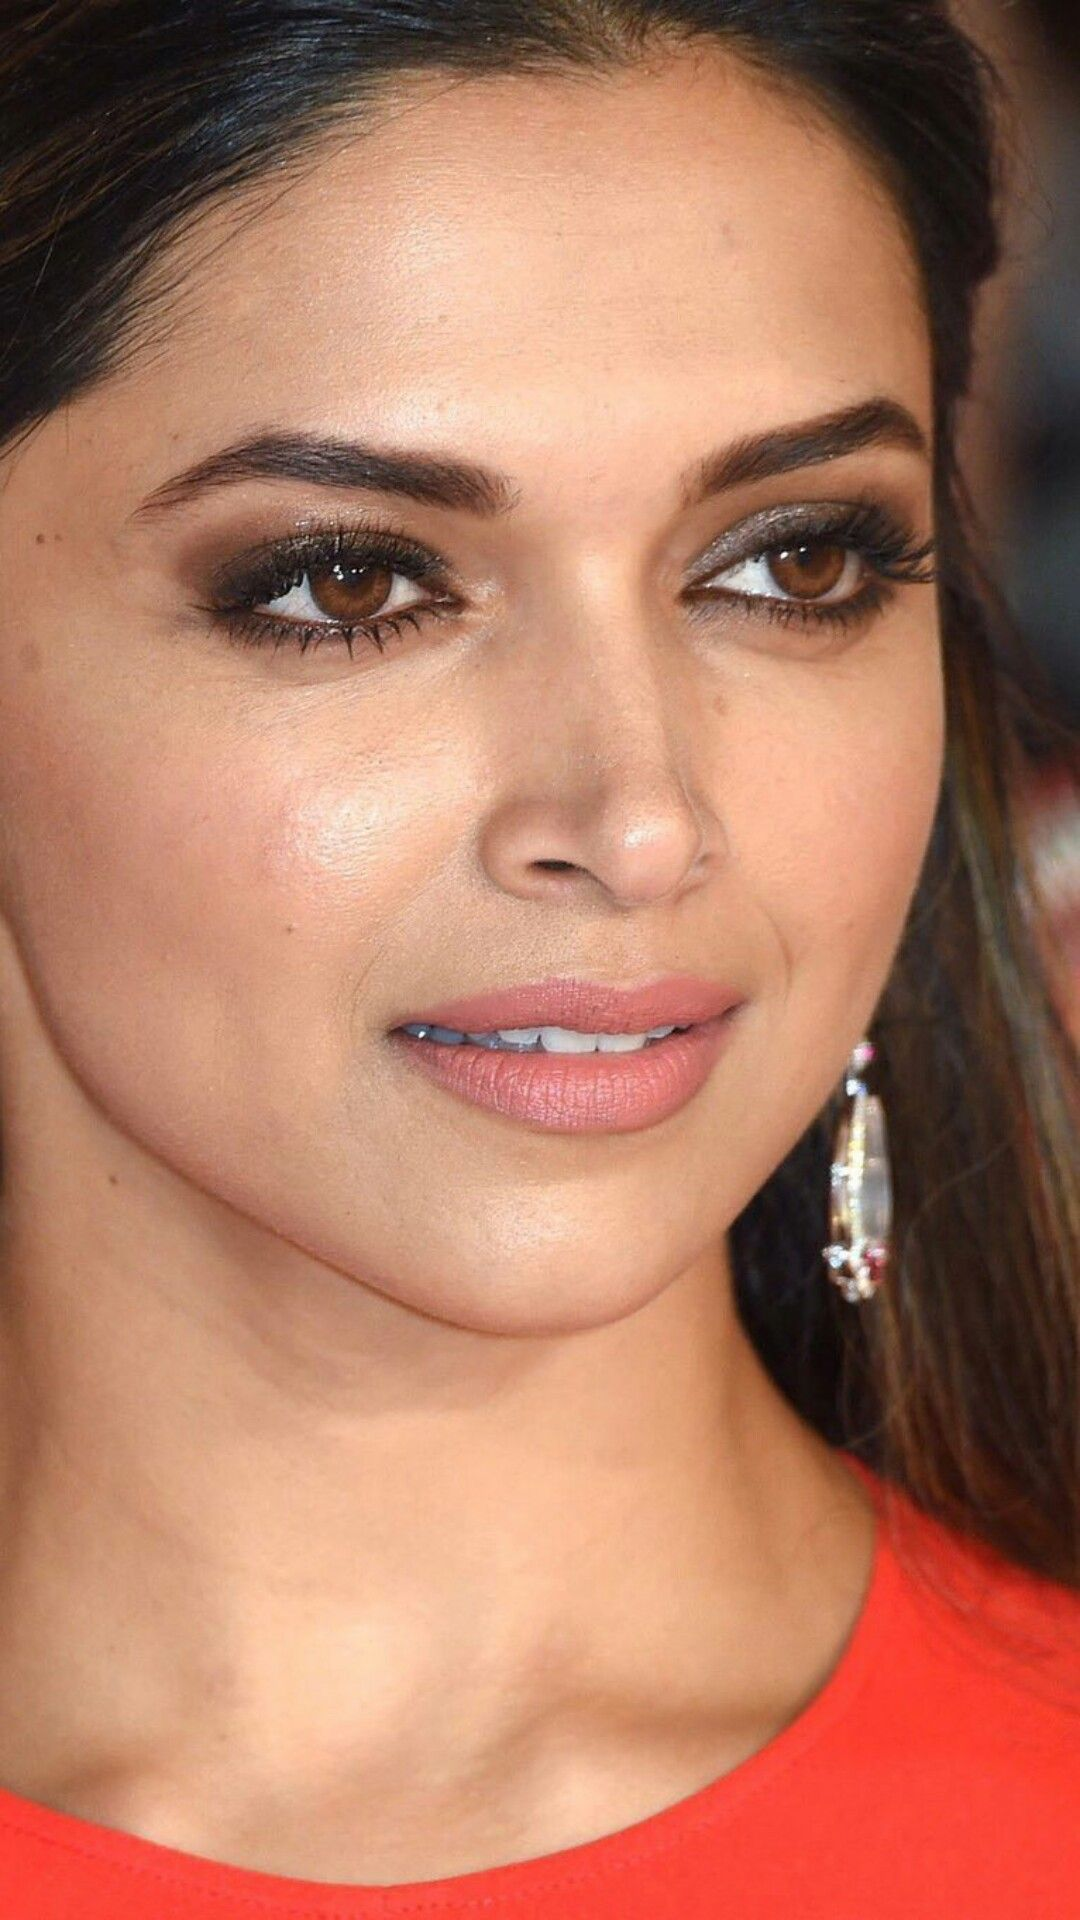 Pin by K🏁 on deepikaperfect Deepika padukone makeup